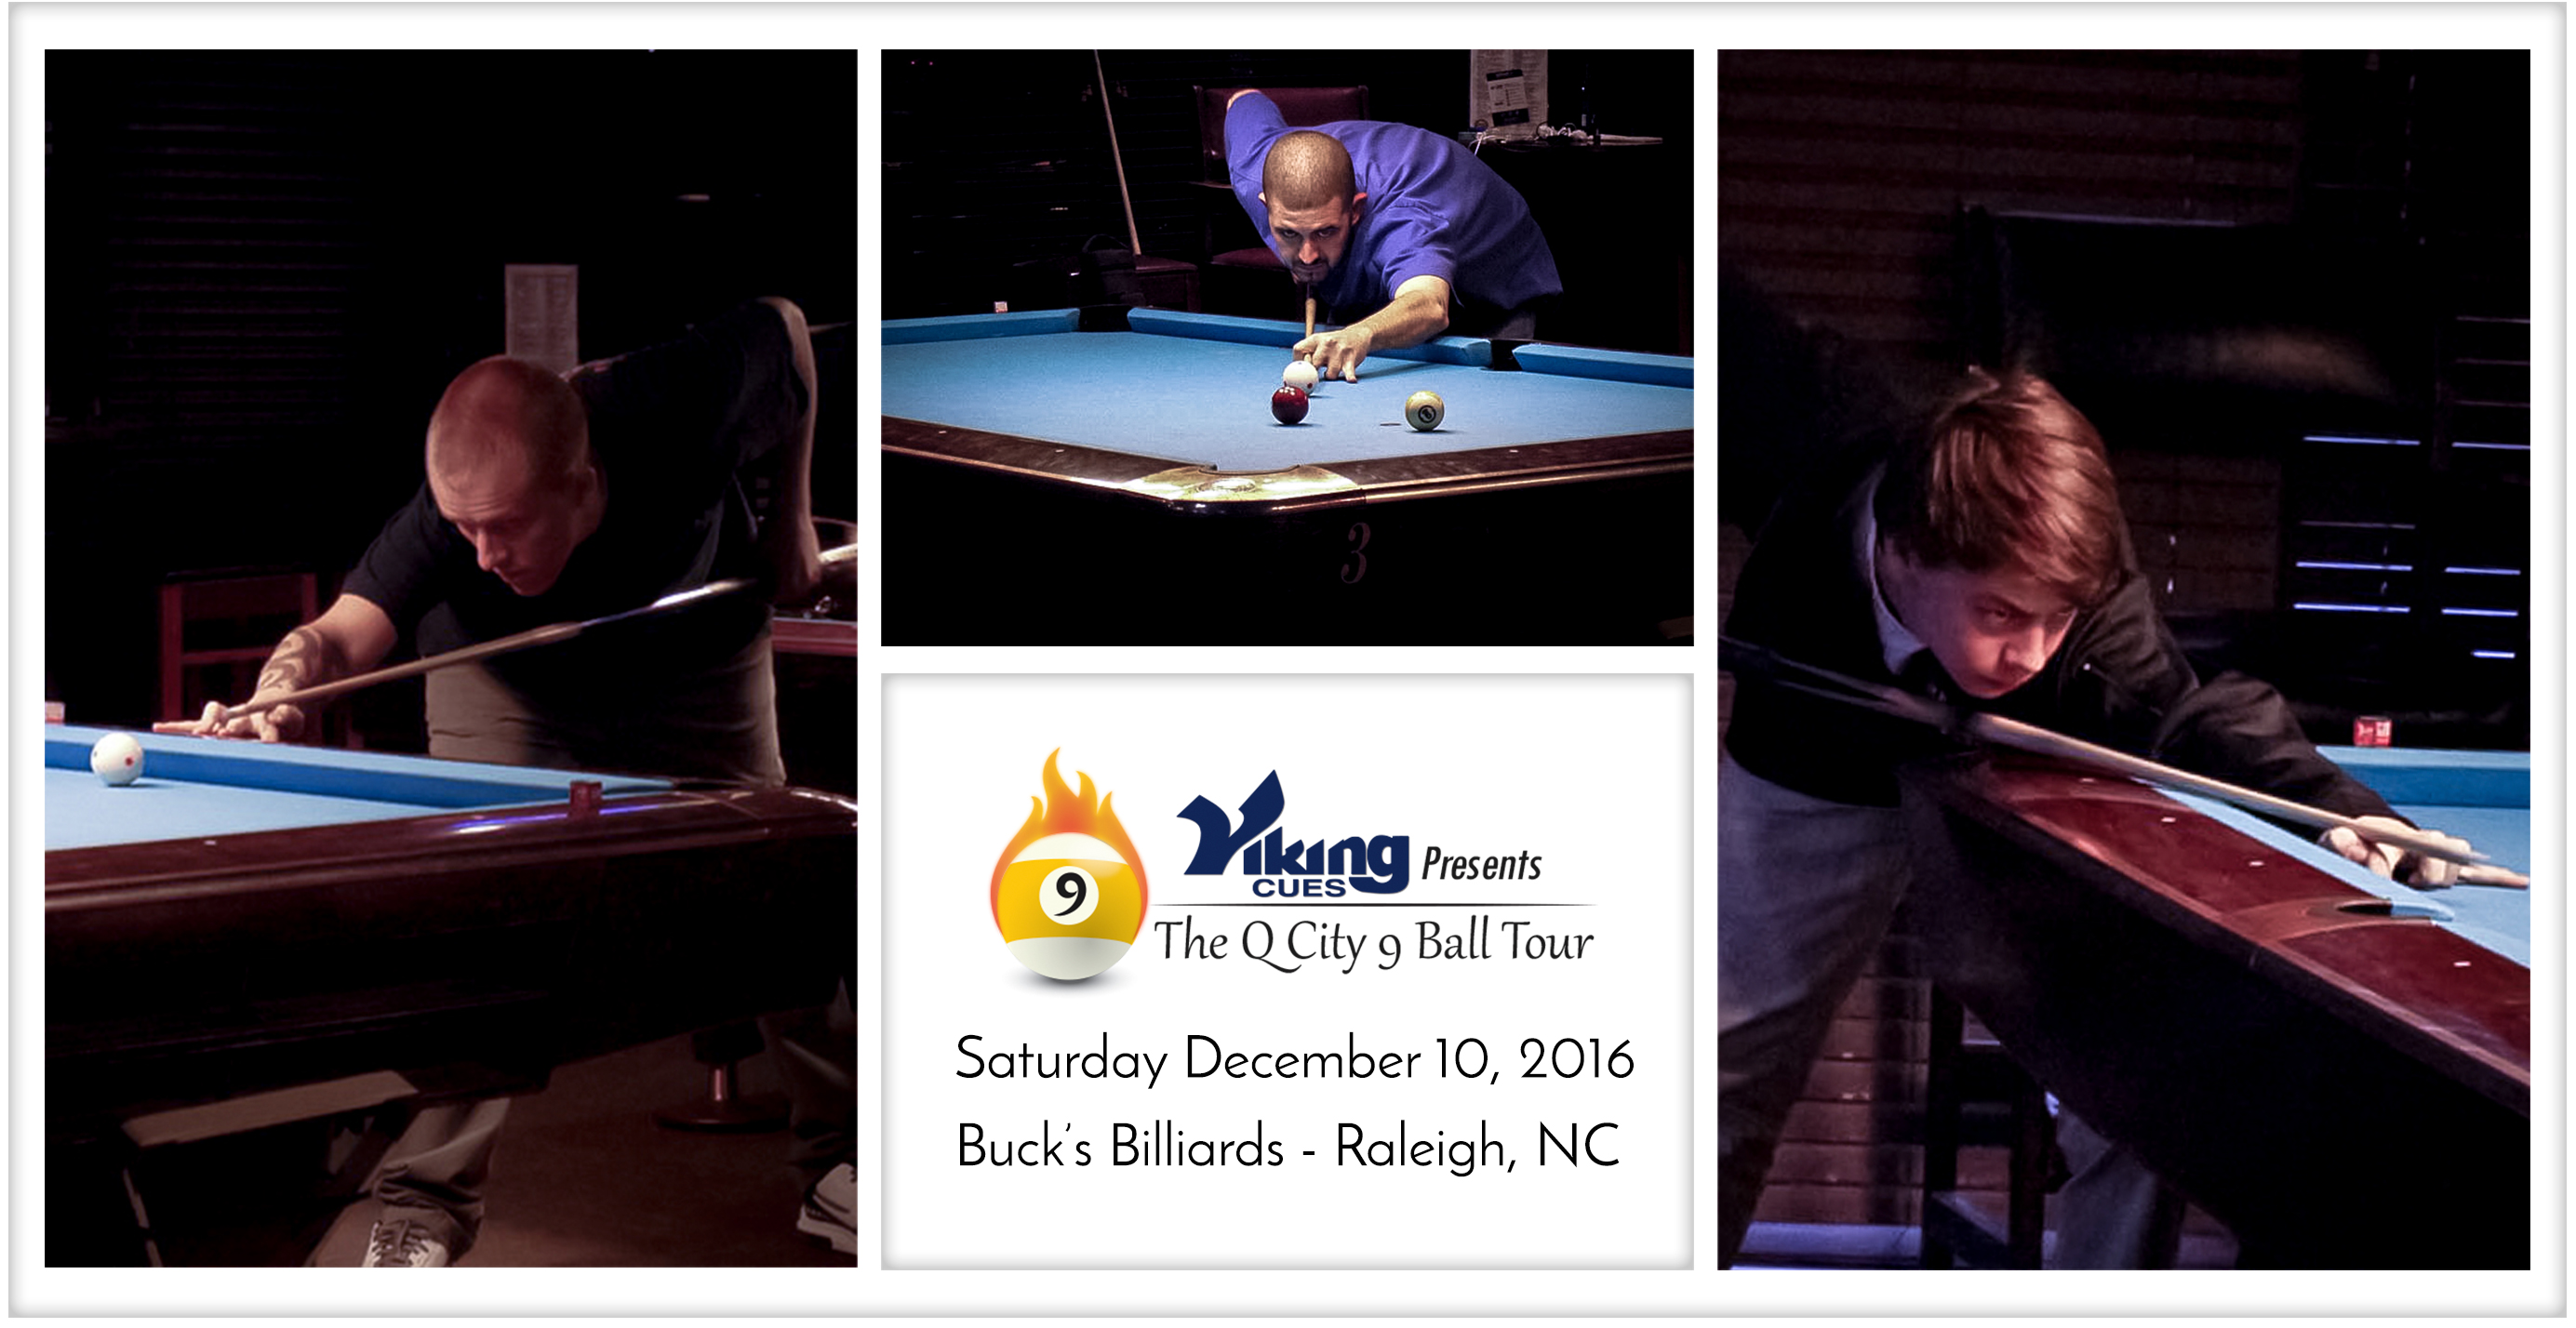 Last Week We Stopped At Bucku0027s Billiards In Raleigh, NC For The Viking Cues  Q City 9 Ball Tour Attracting 24 Players. Weu0027d Like To Thank Shara Adams  And Her ...